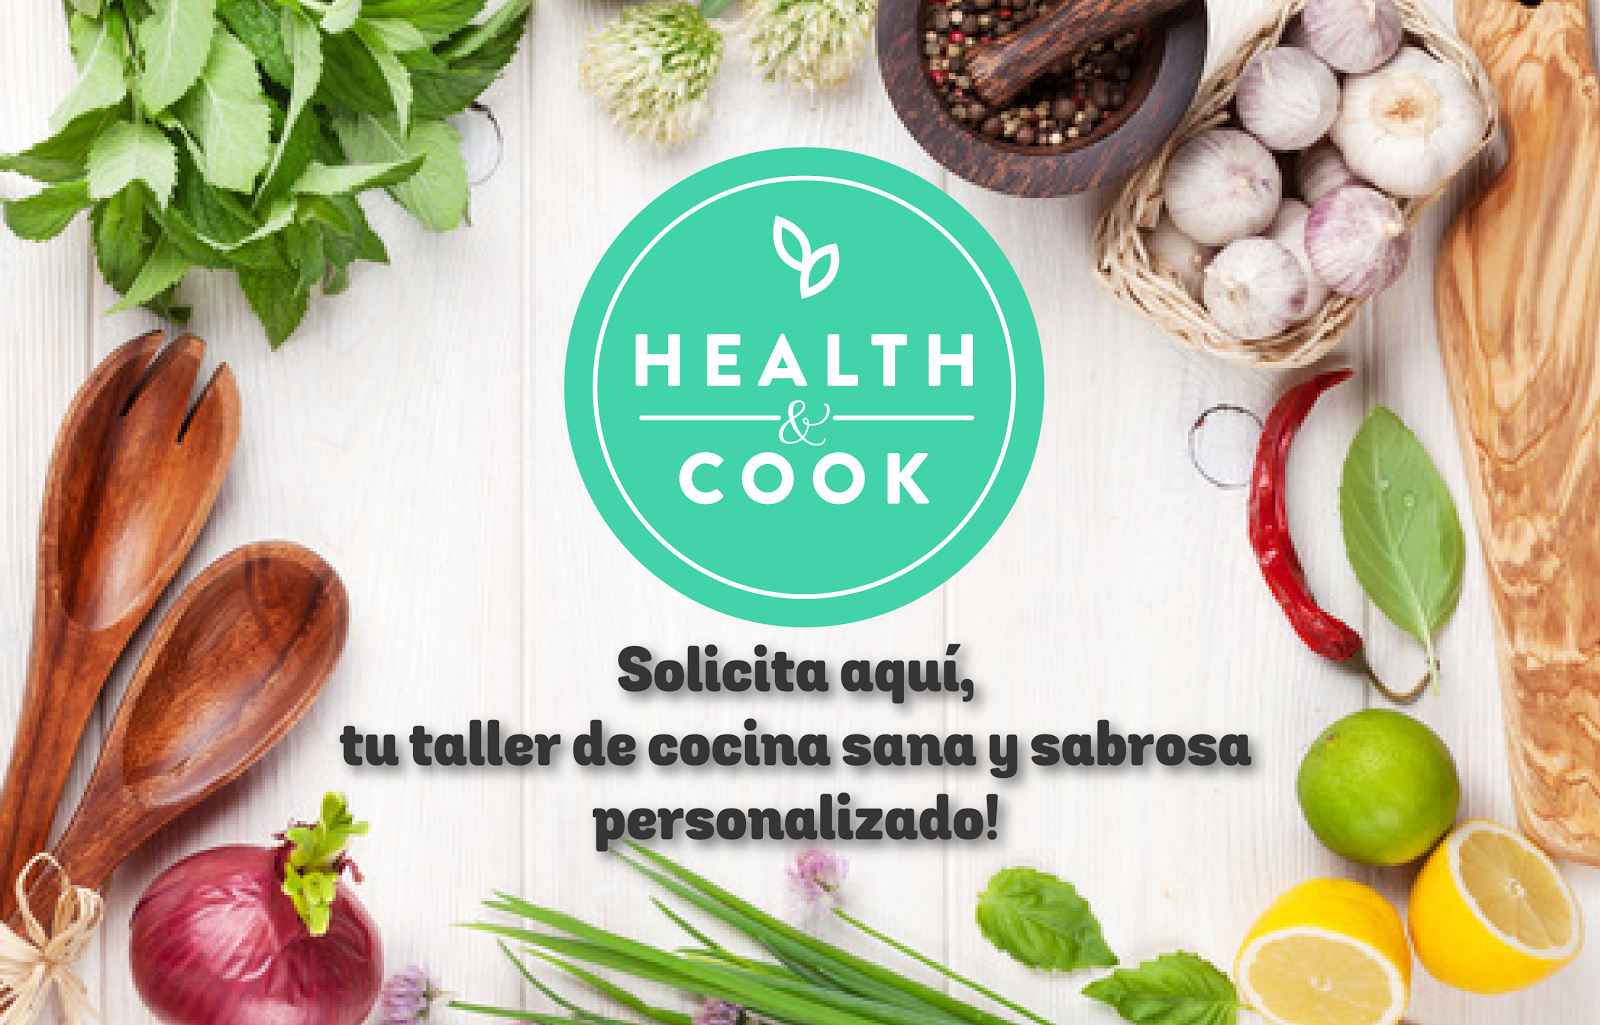 Health & Cook